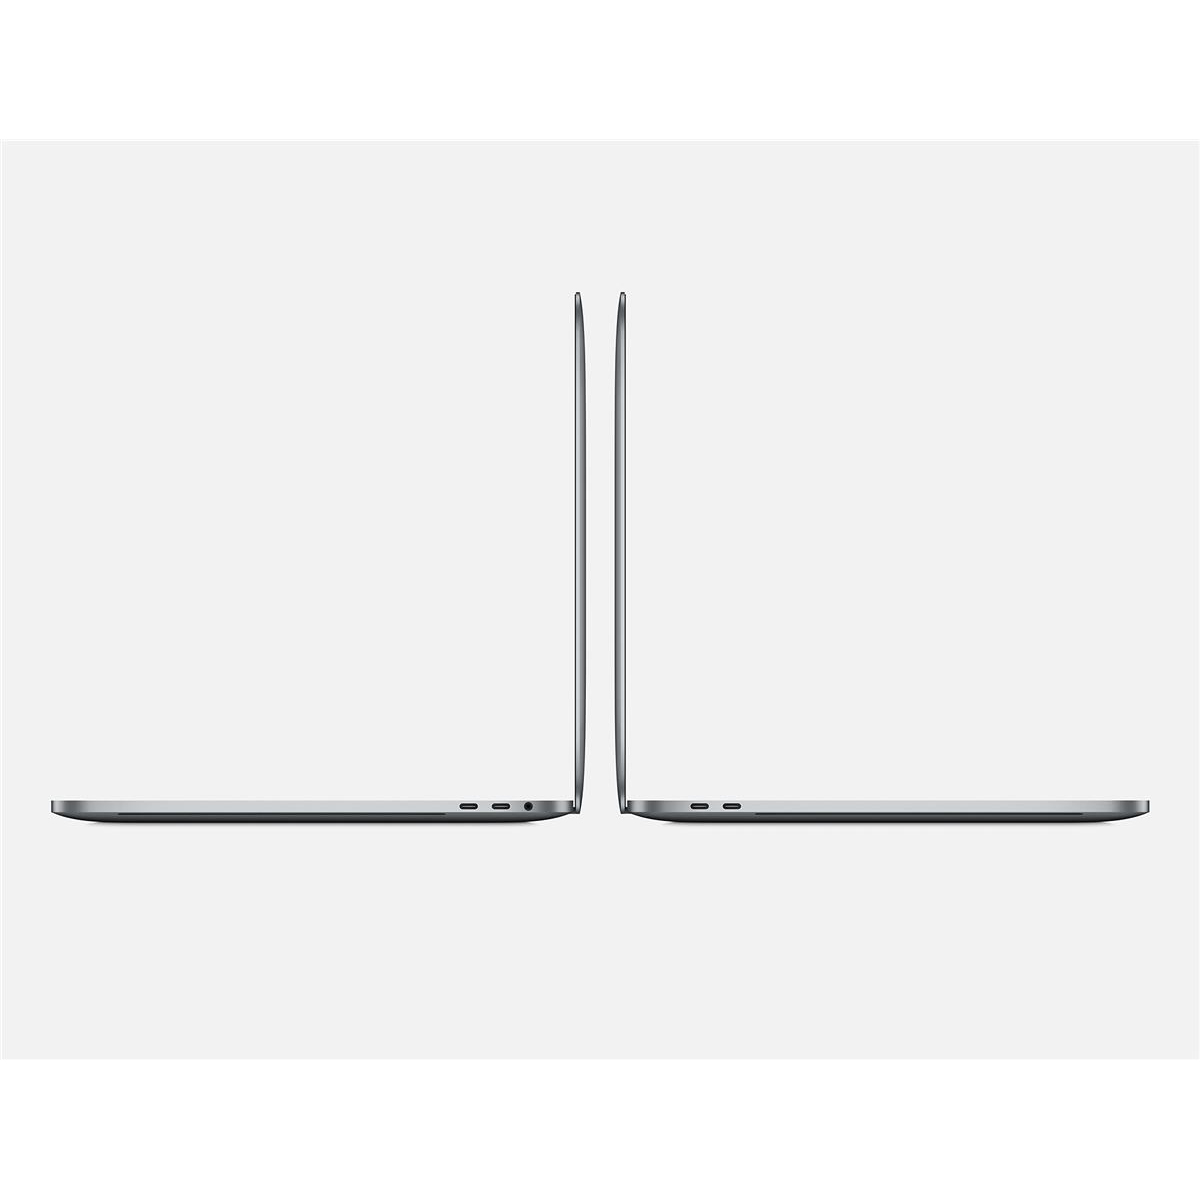 Apple MacBook Mac OS Wi-Fi 8GB RAM 512GB SDD 12-hour Battery 12in Space Grey Ref MPTR2B/A